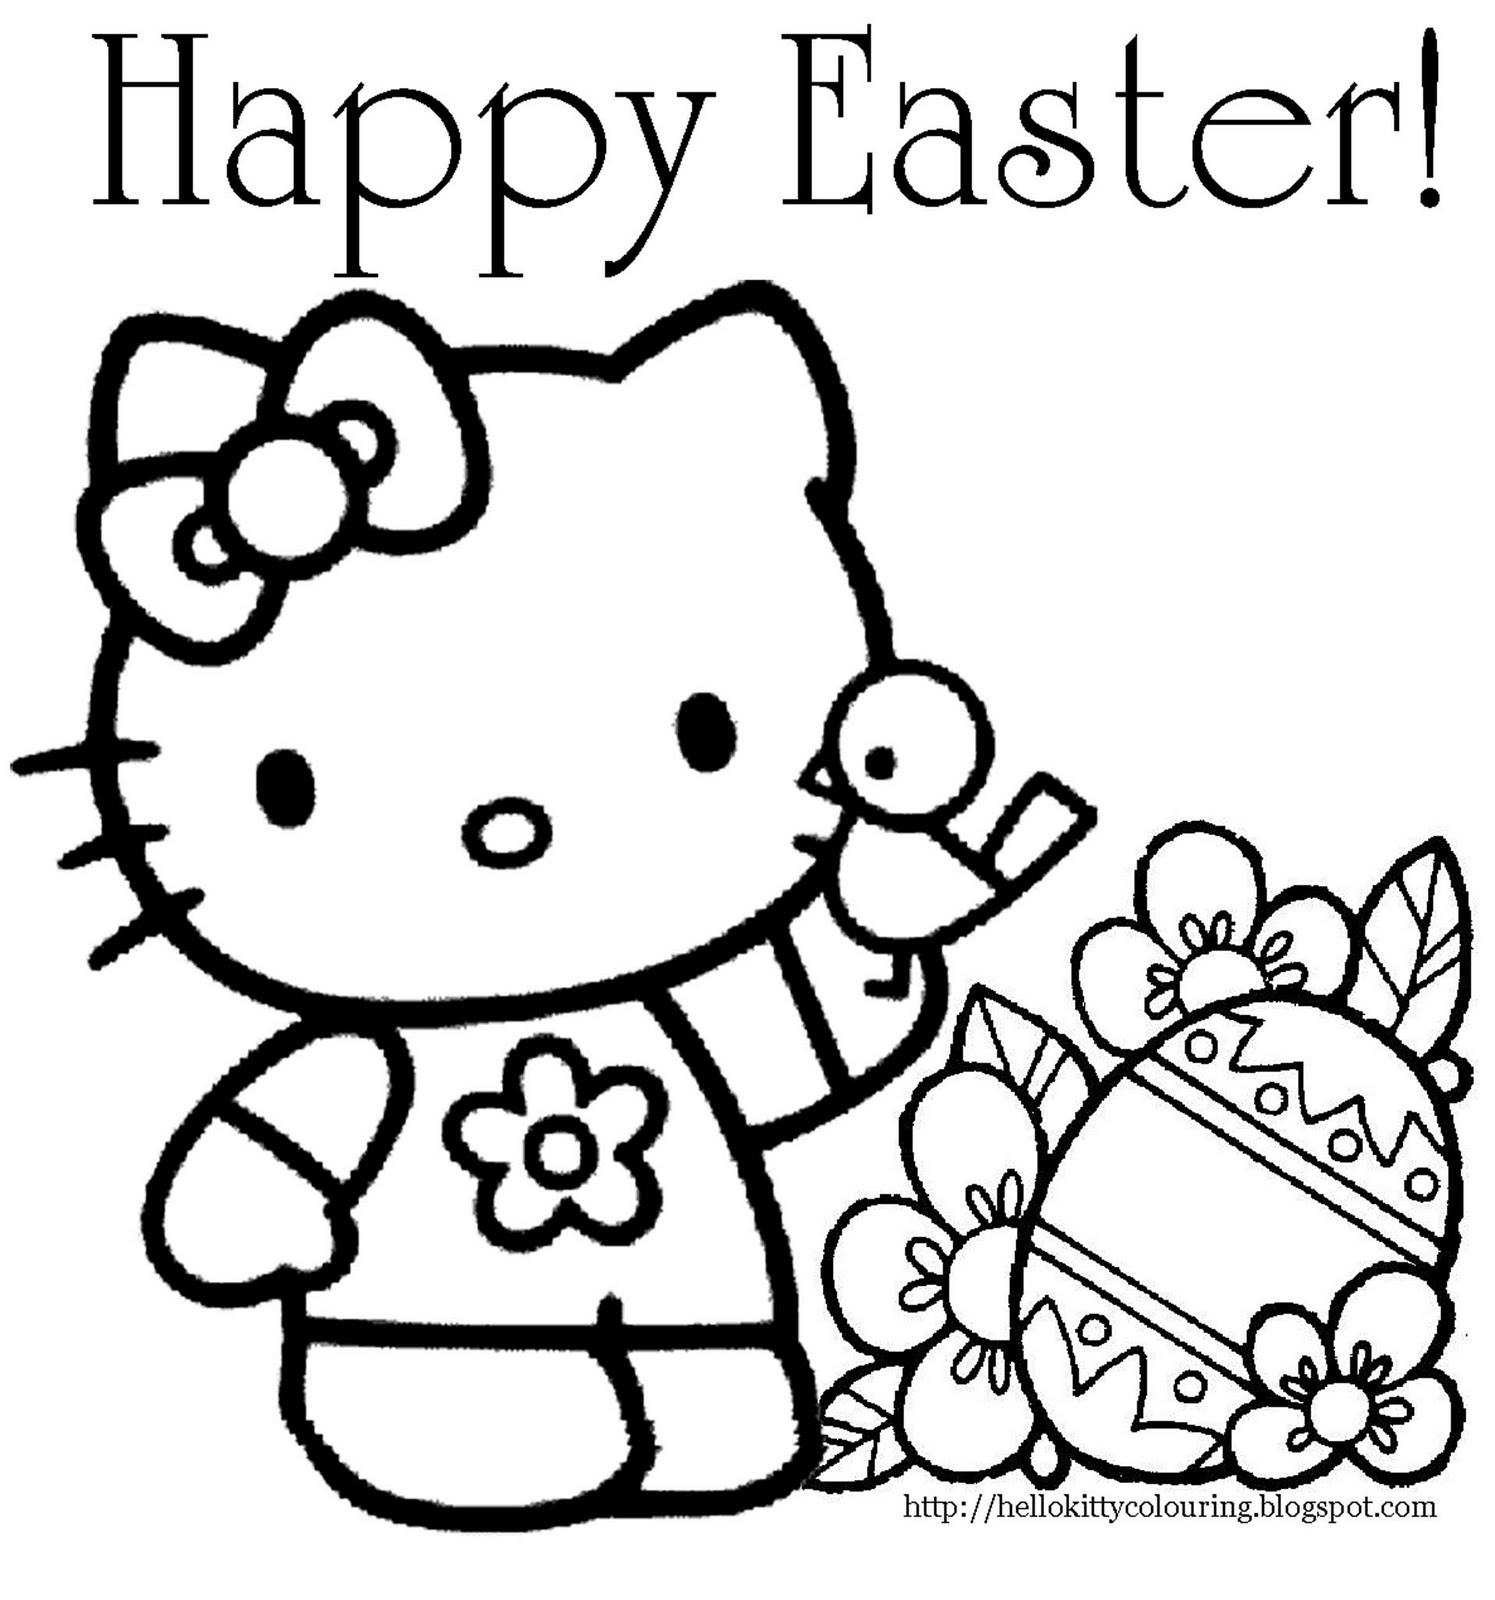 Coloriages A Imprimer Hello Kitty Colorier